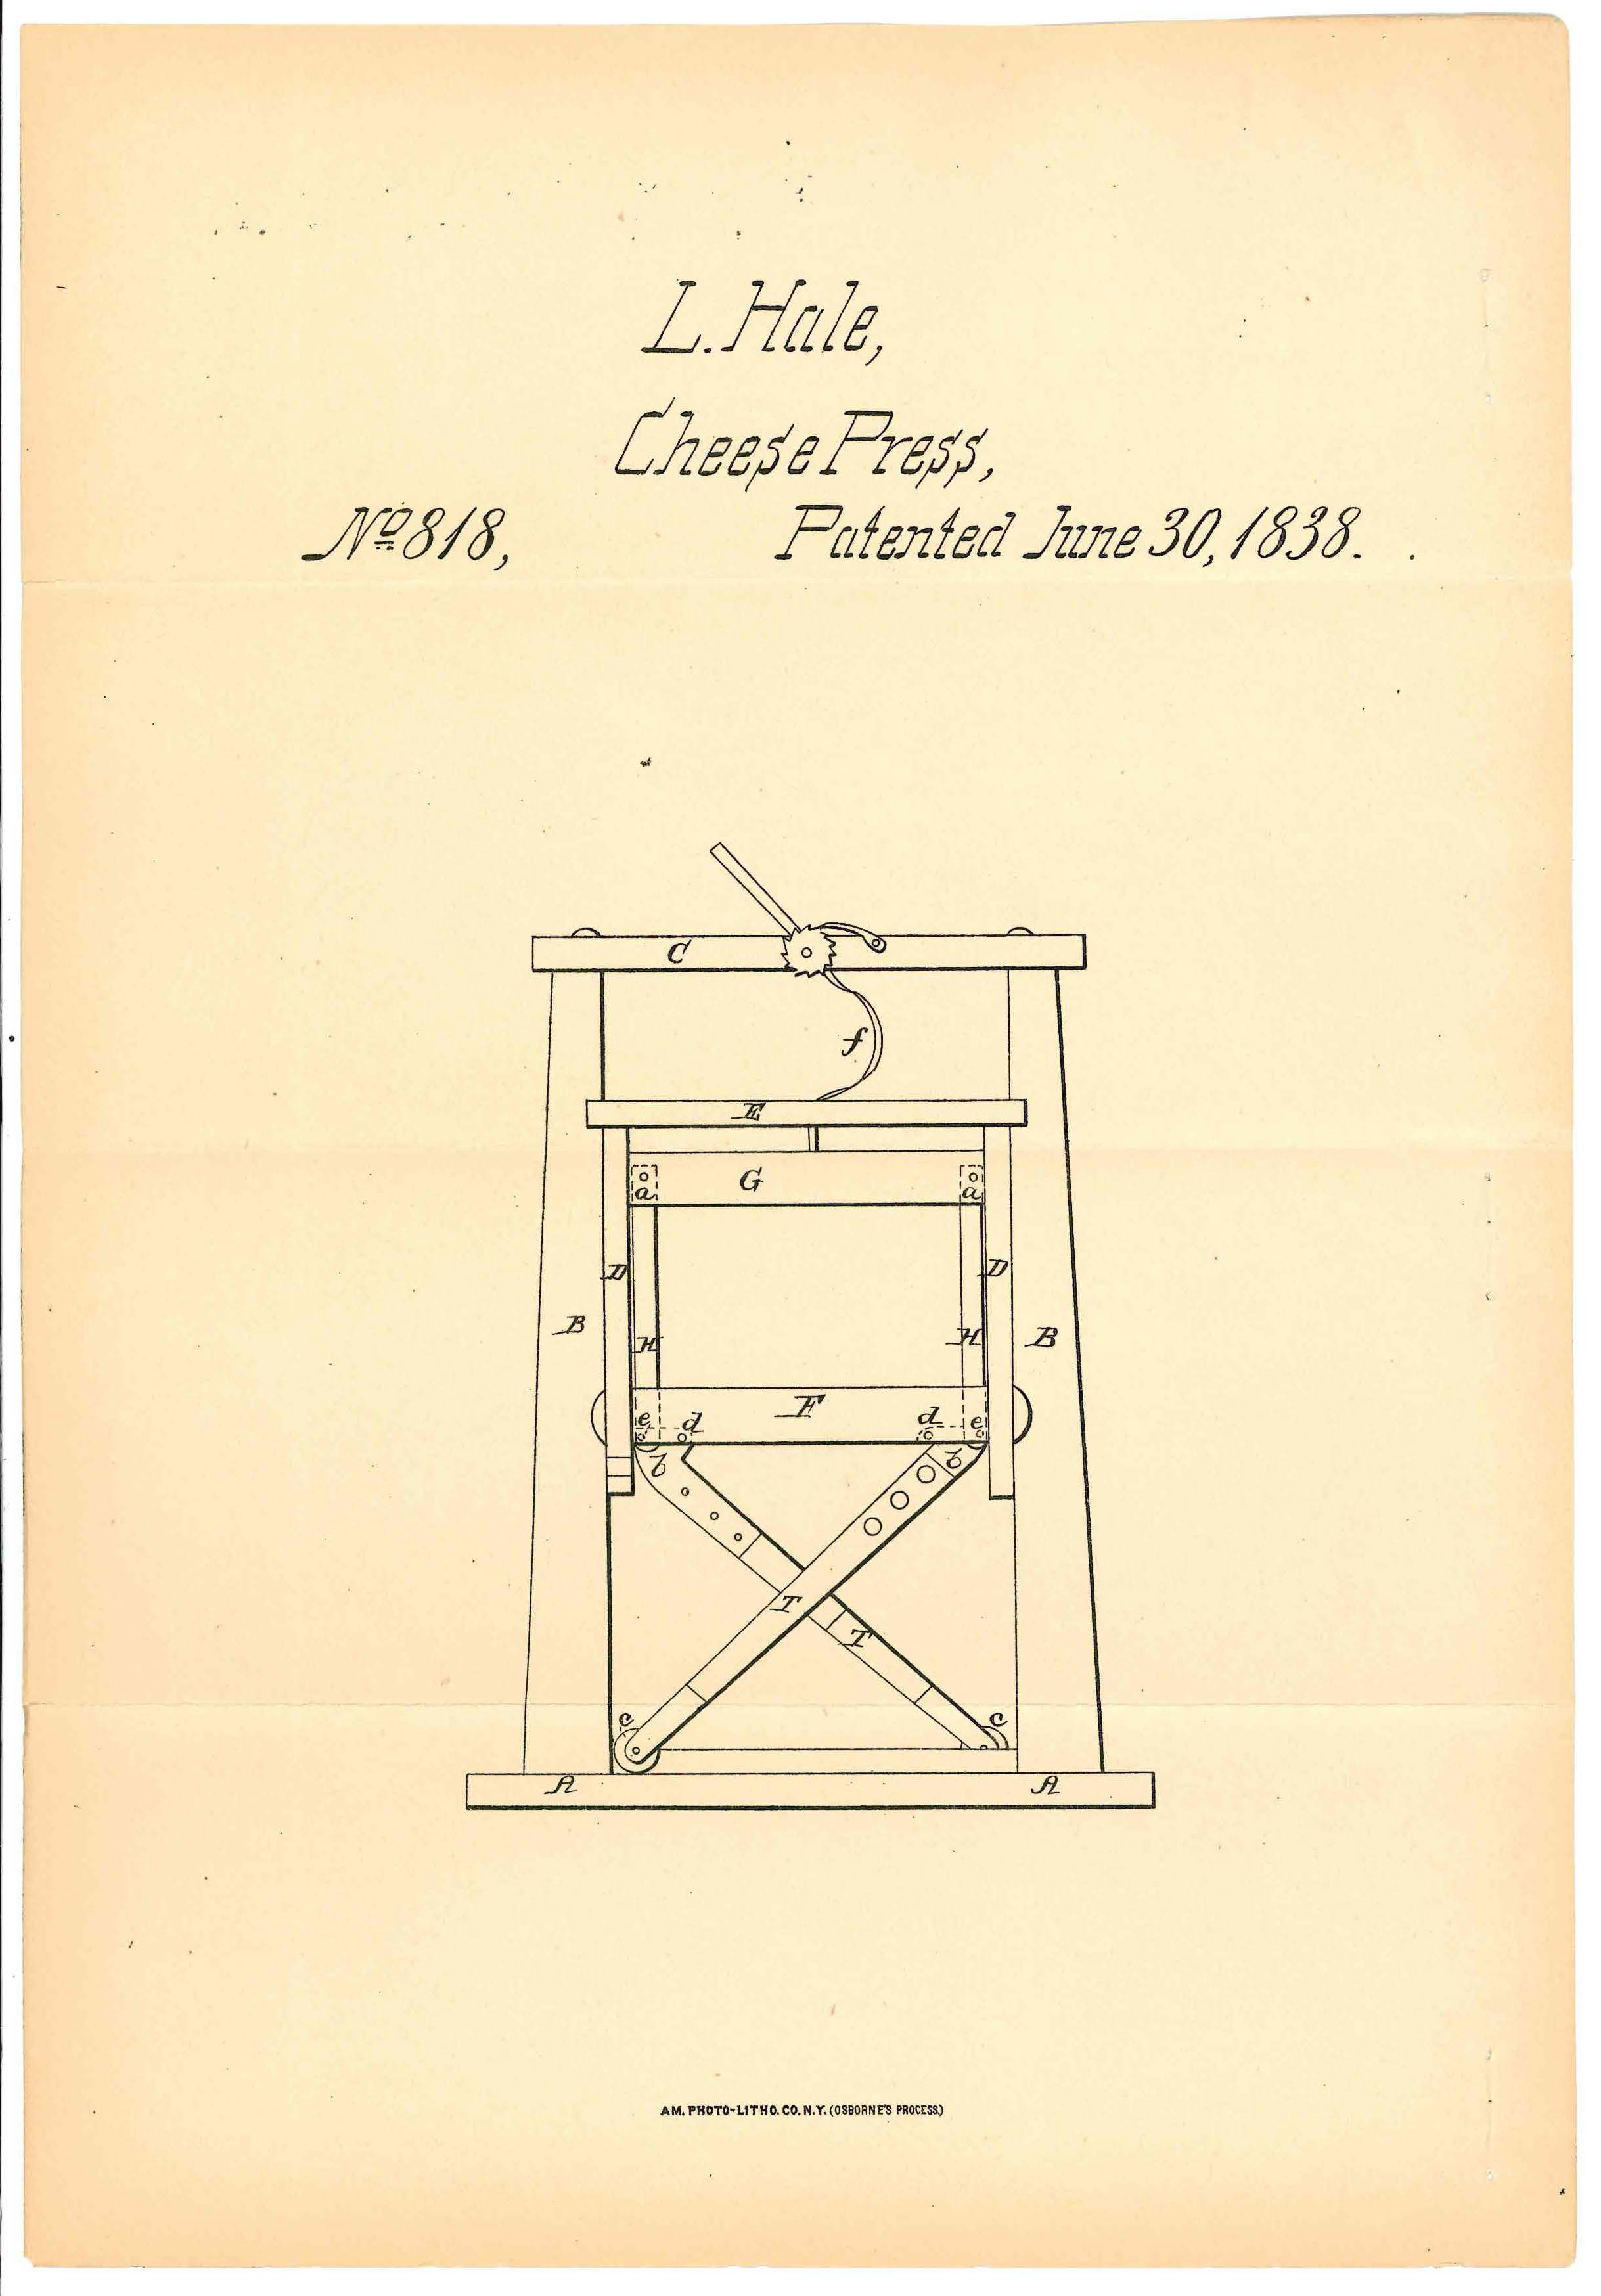 Patent for a cheese press, given to Luke Hale in June, 1838. National Archives.